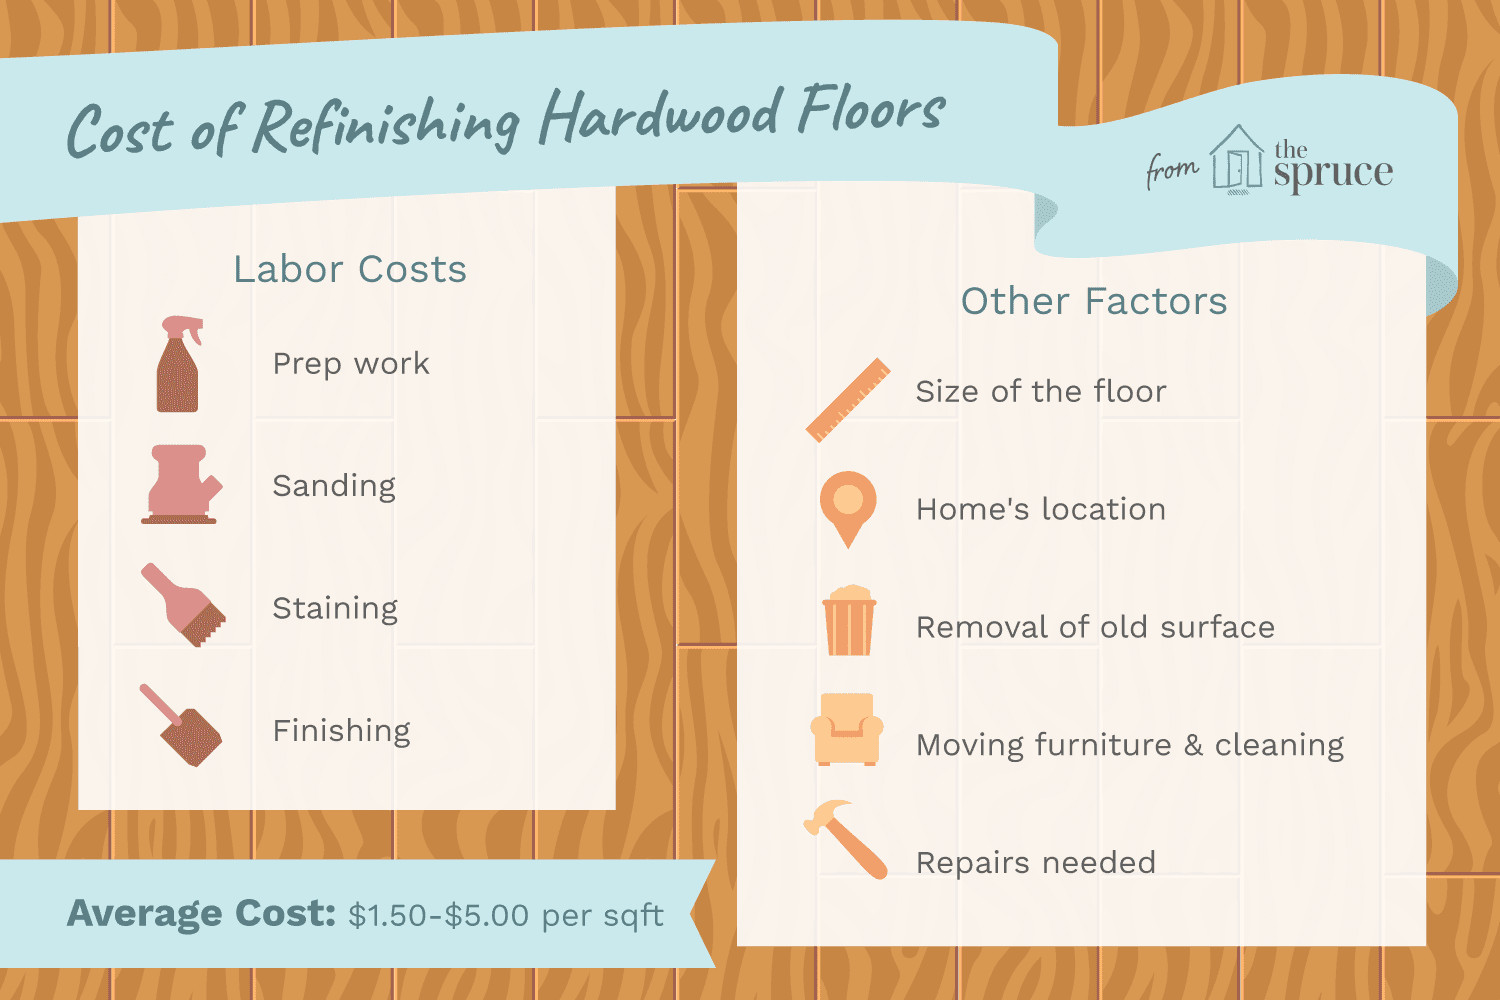 hardwood floor cleaning atlanta of the cost to refinish hardwood floors intended for cost to refinish hardwood floors 1314853 final 5bb6259346e0fb0026825ce2